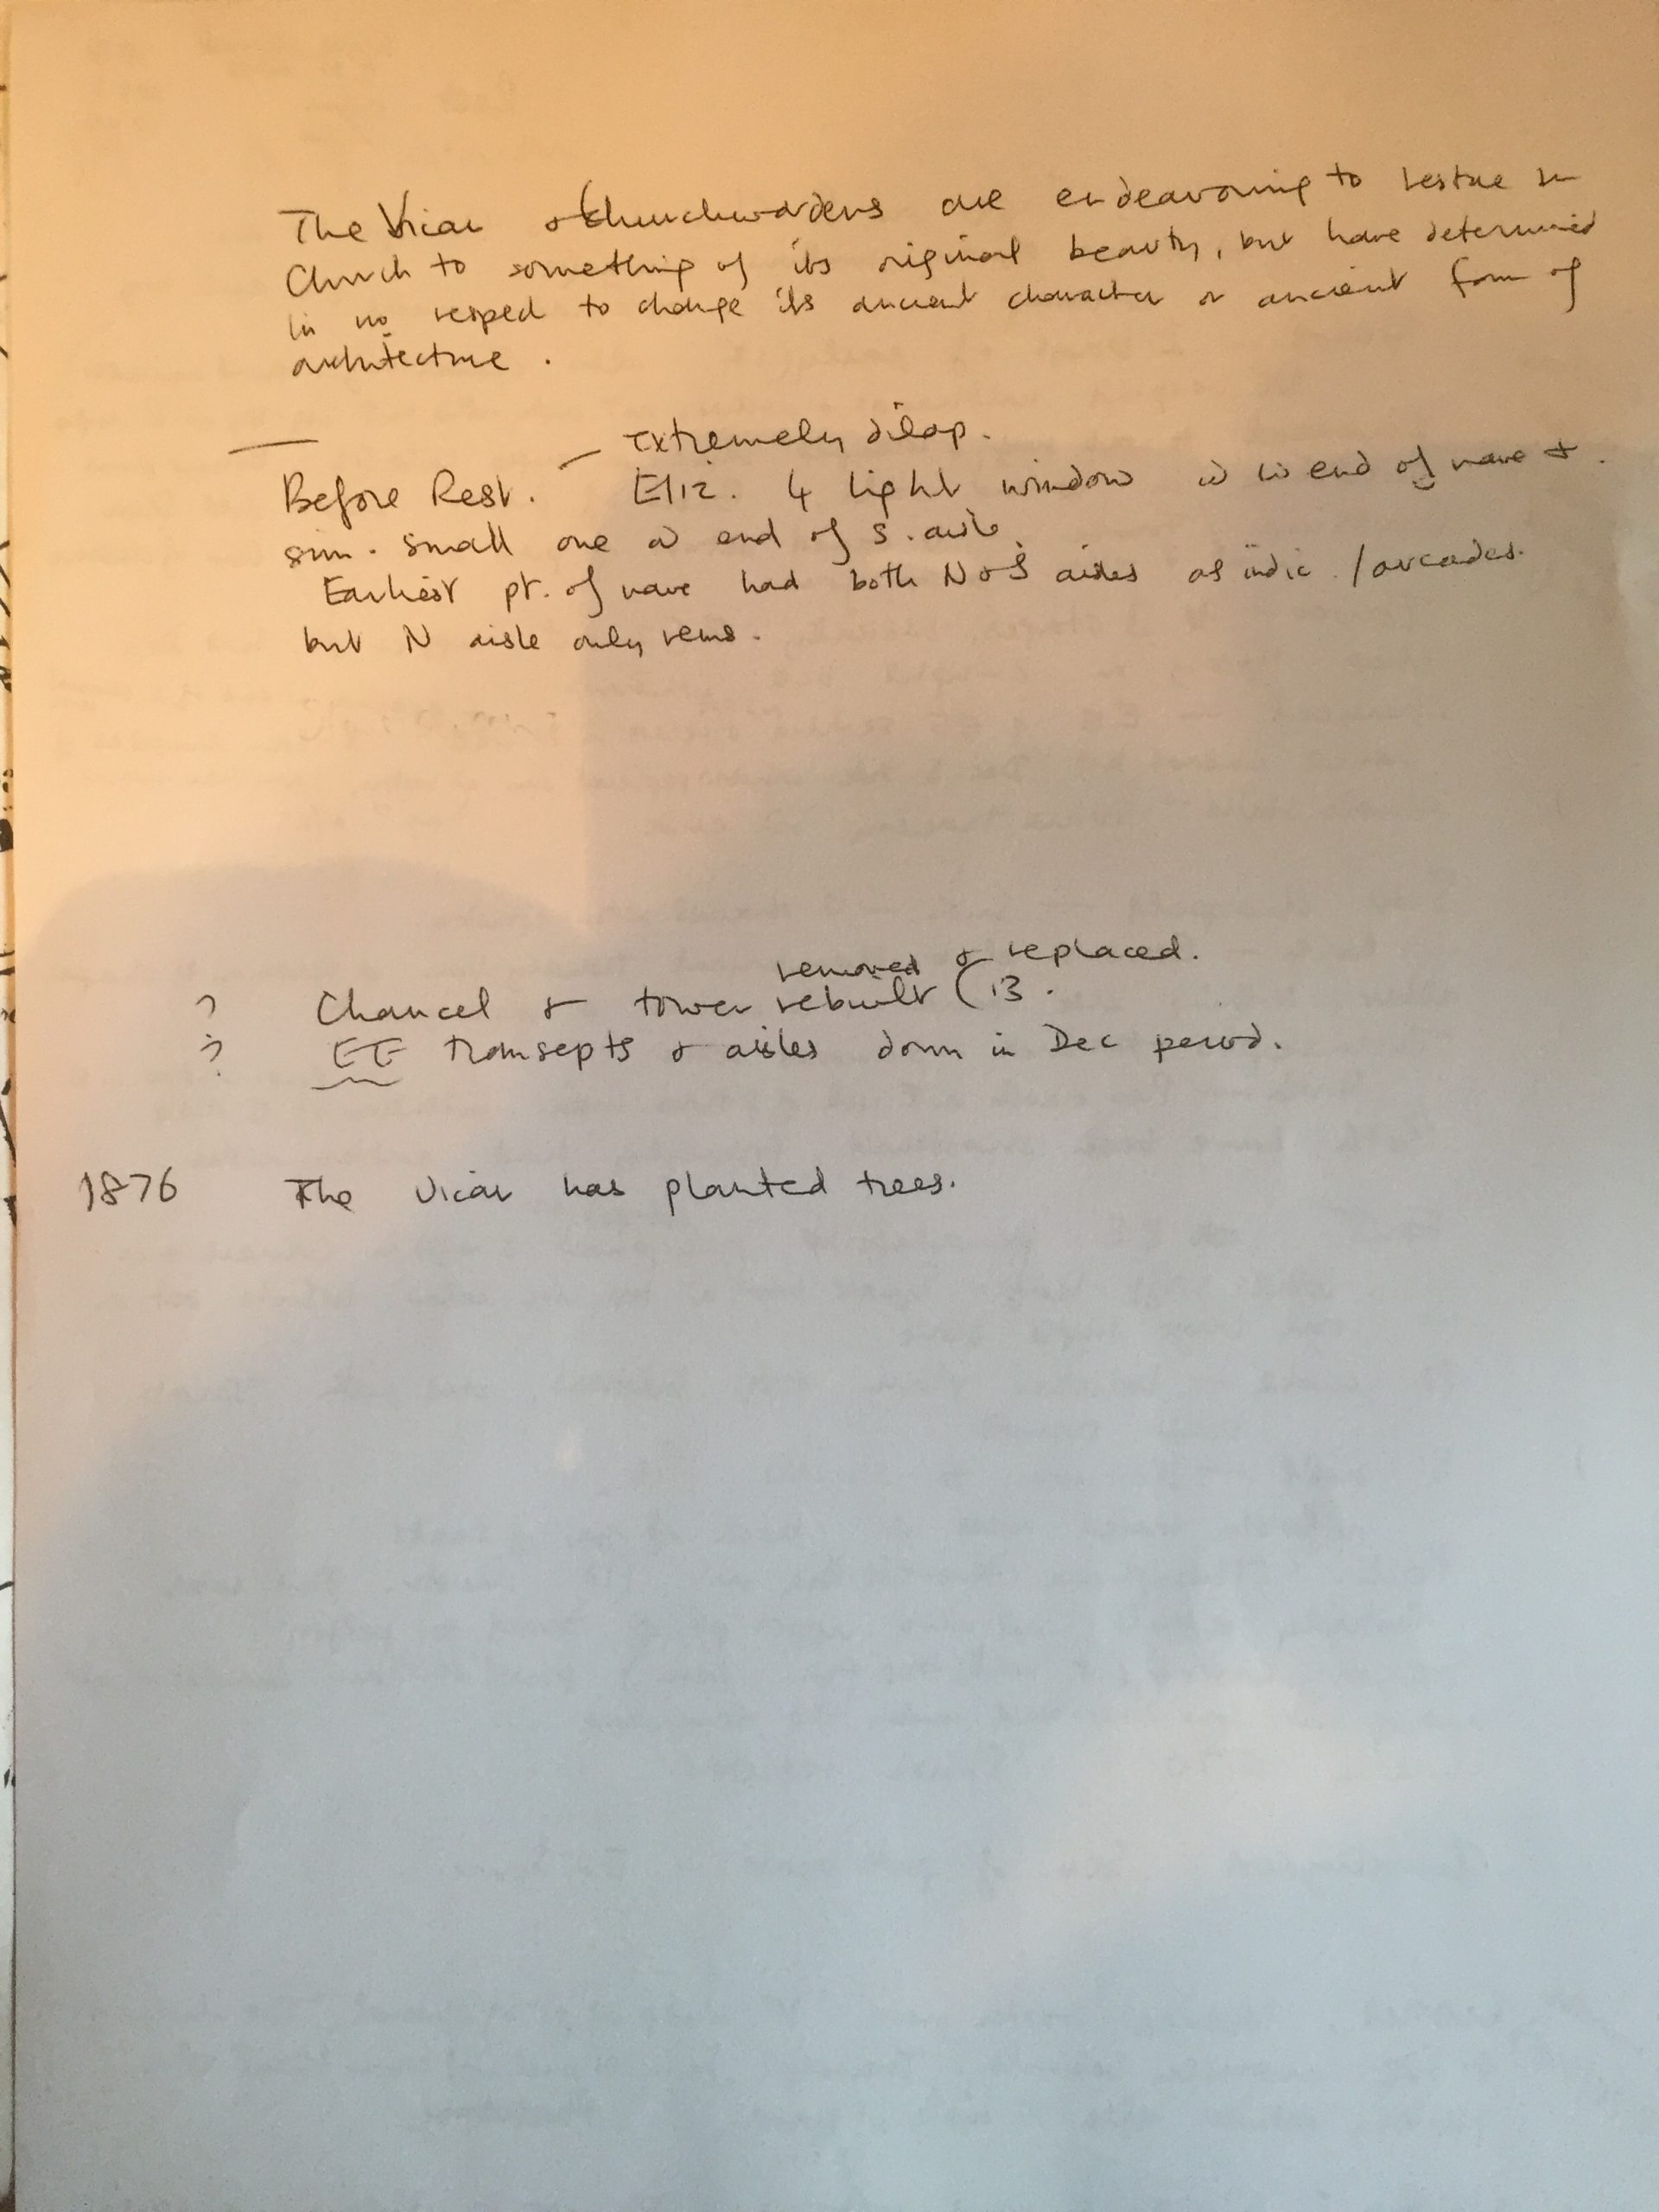 HH Bicker history and vicars Notes 25